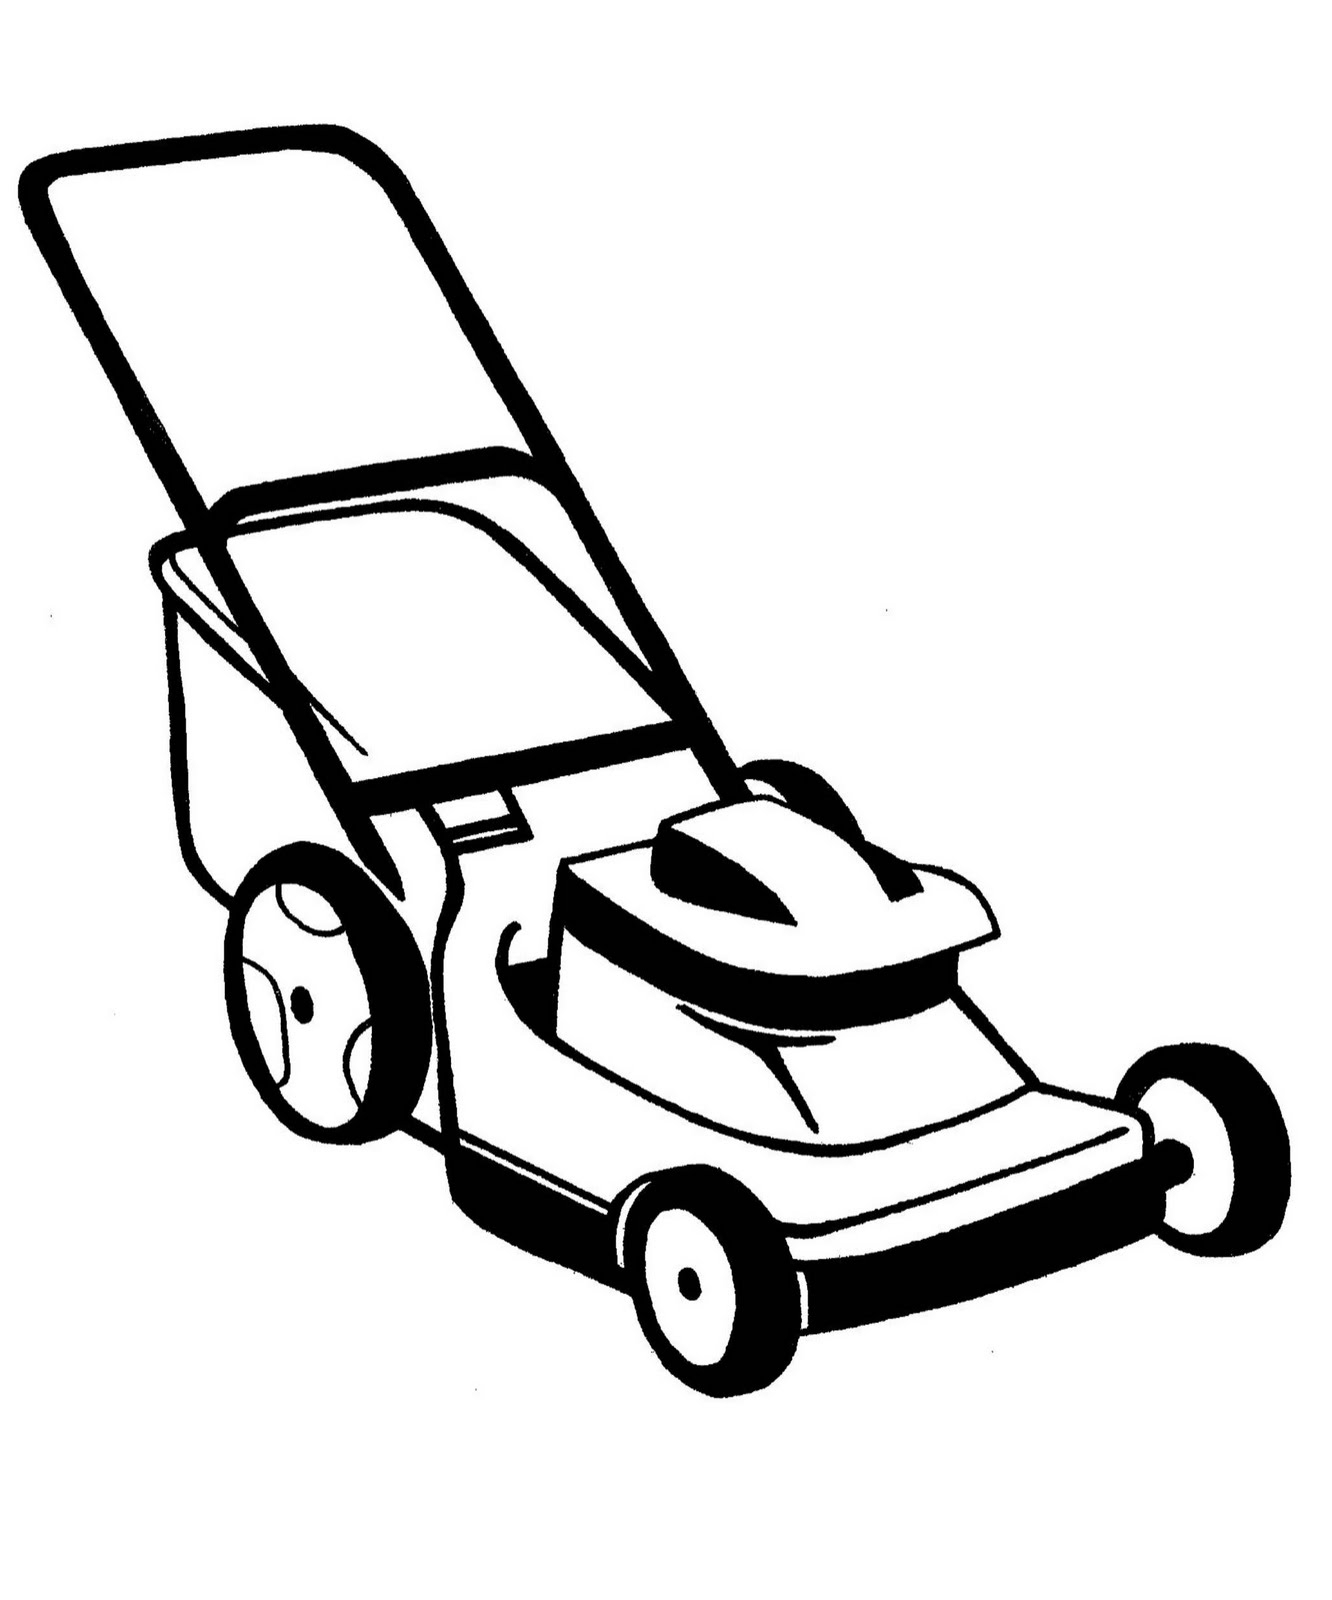 Mowing clipart small engine. Awesome lawn mower collection